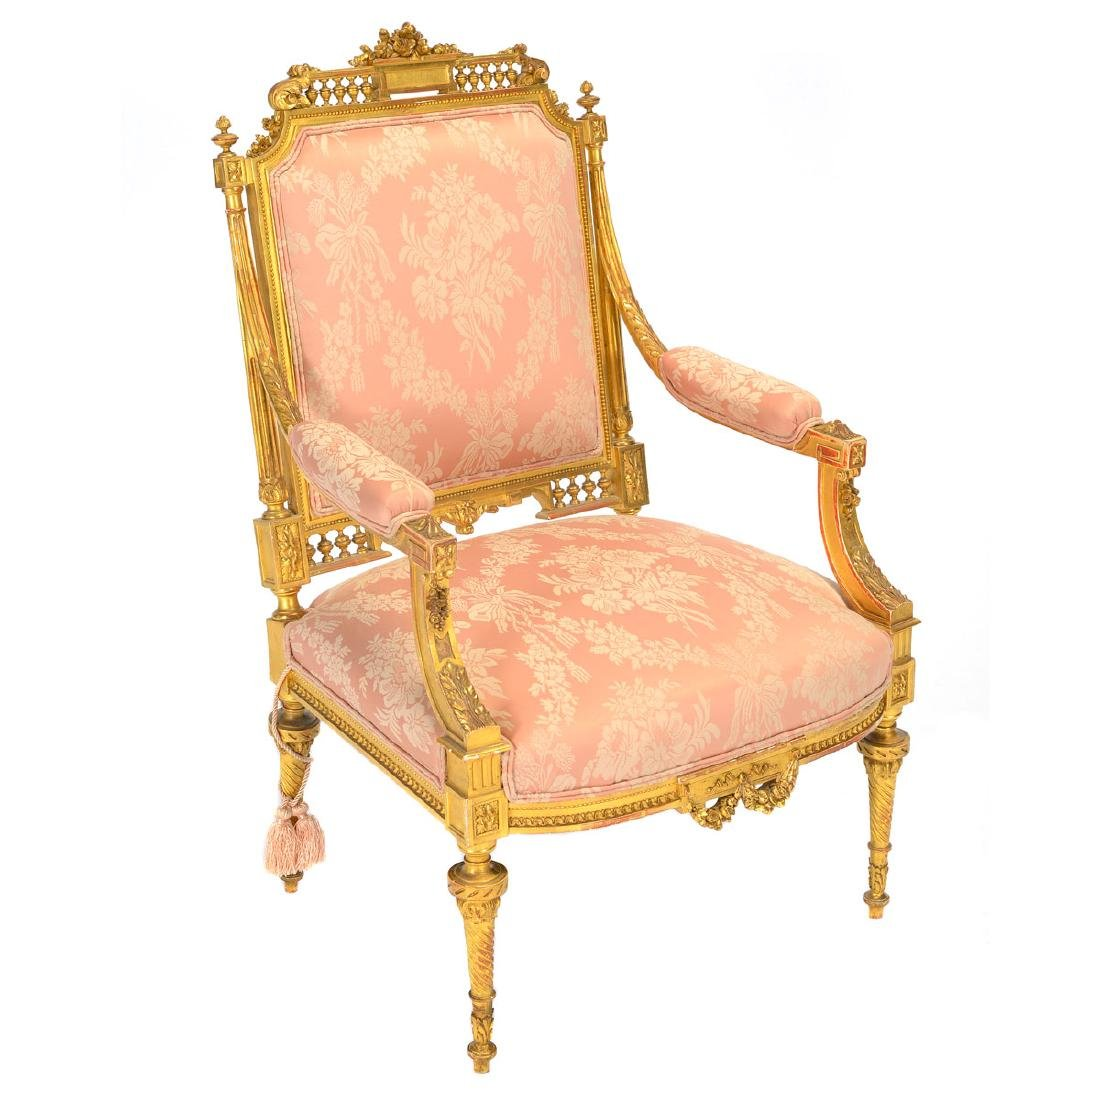 Louis XVI Style Giltwood Upholstered Fauteuil